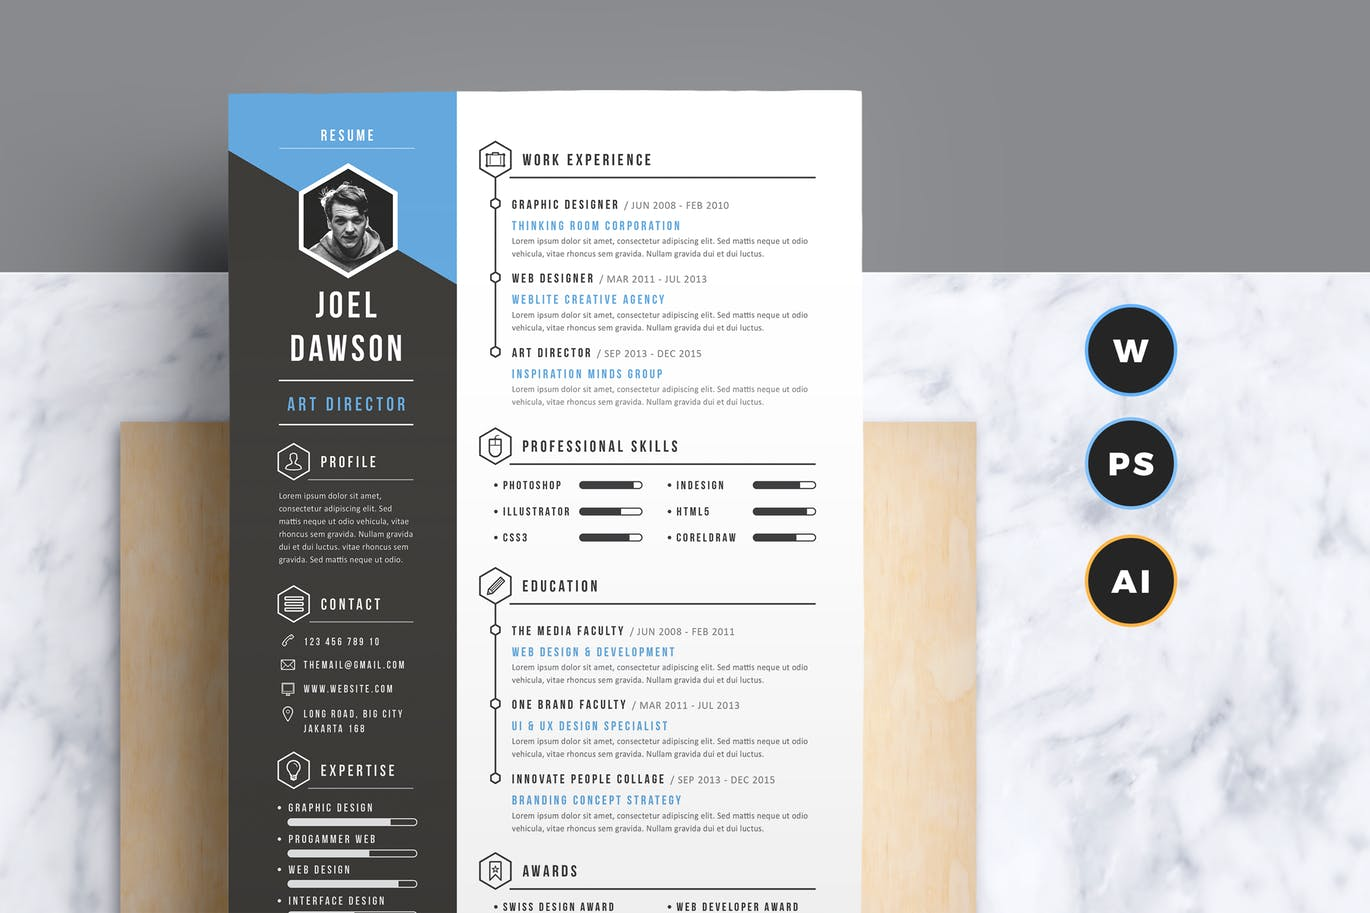 The best cv resume templates 50 examples design shack yet another great resume template for coders and designers this template features plenty of sections suitable for designers to showcase their skills and yelopaper Choice Image